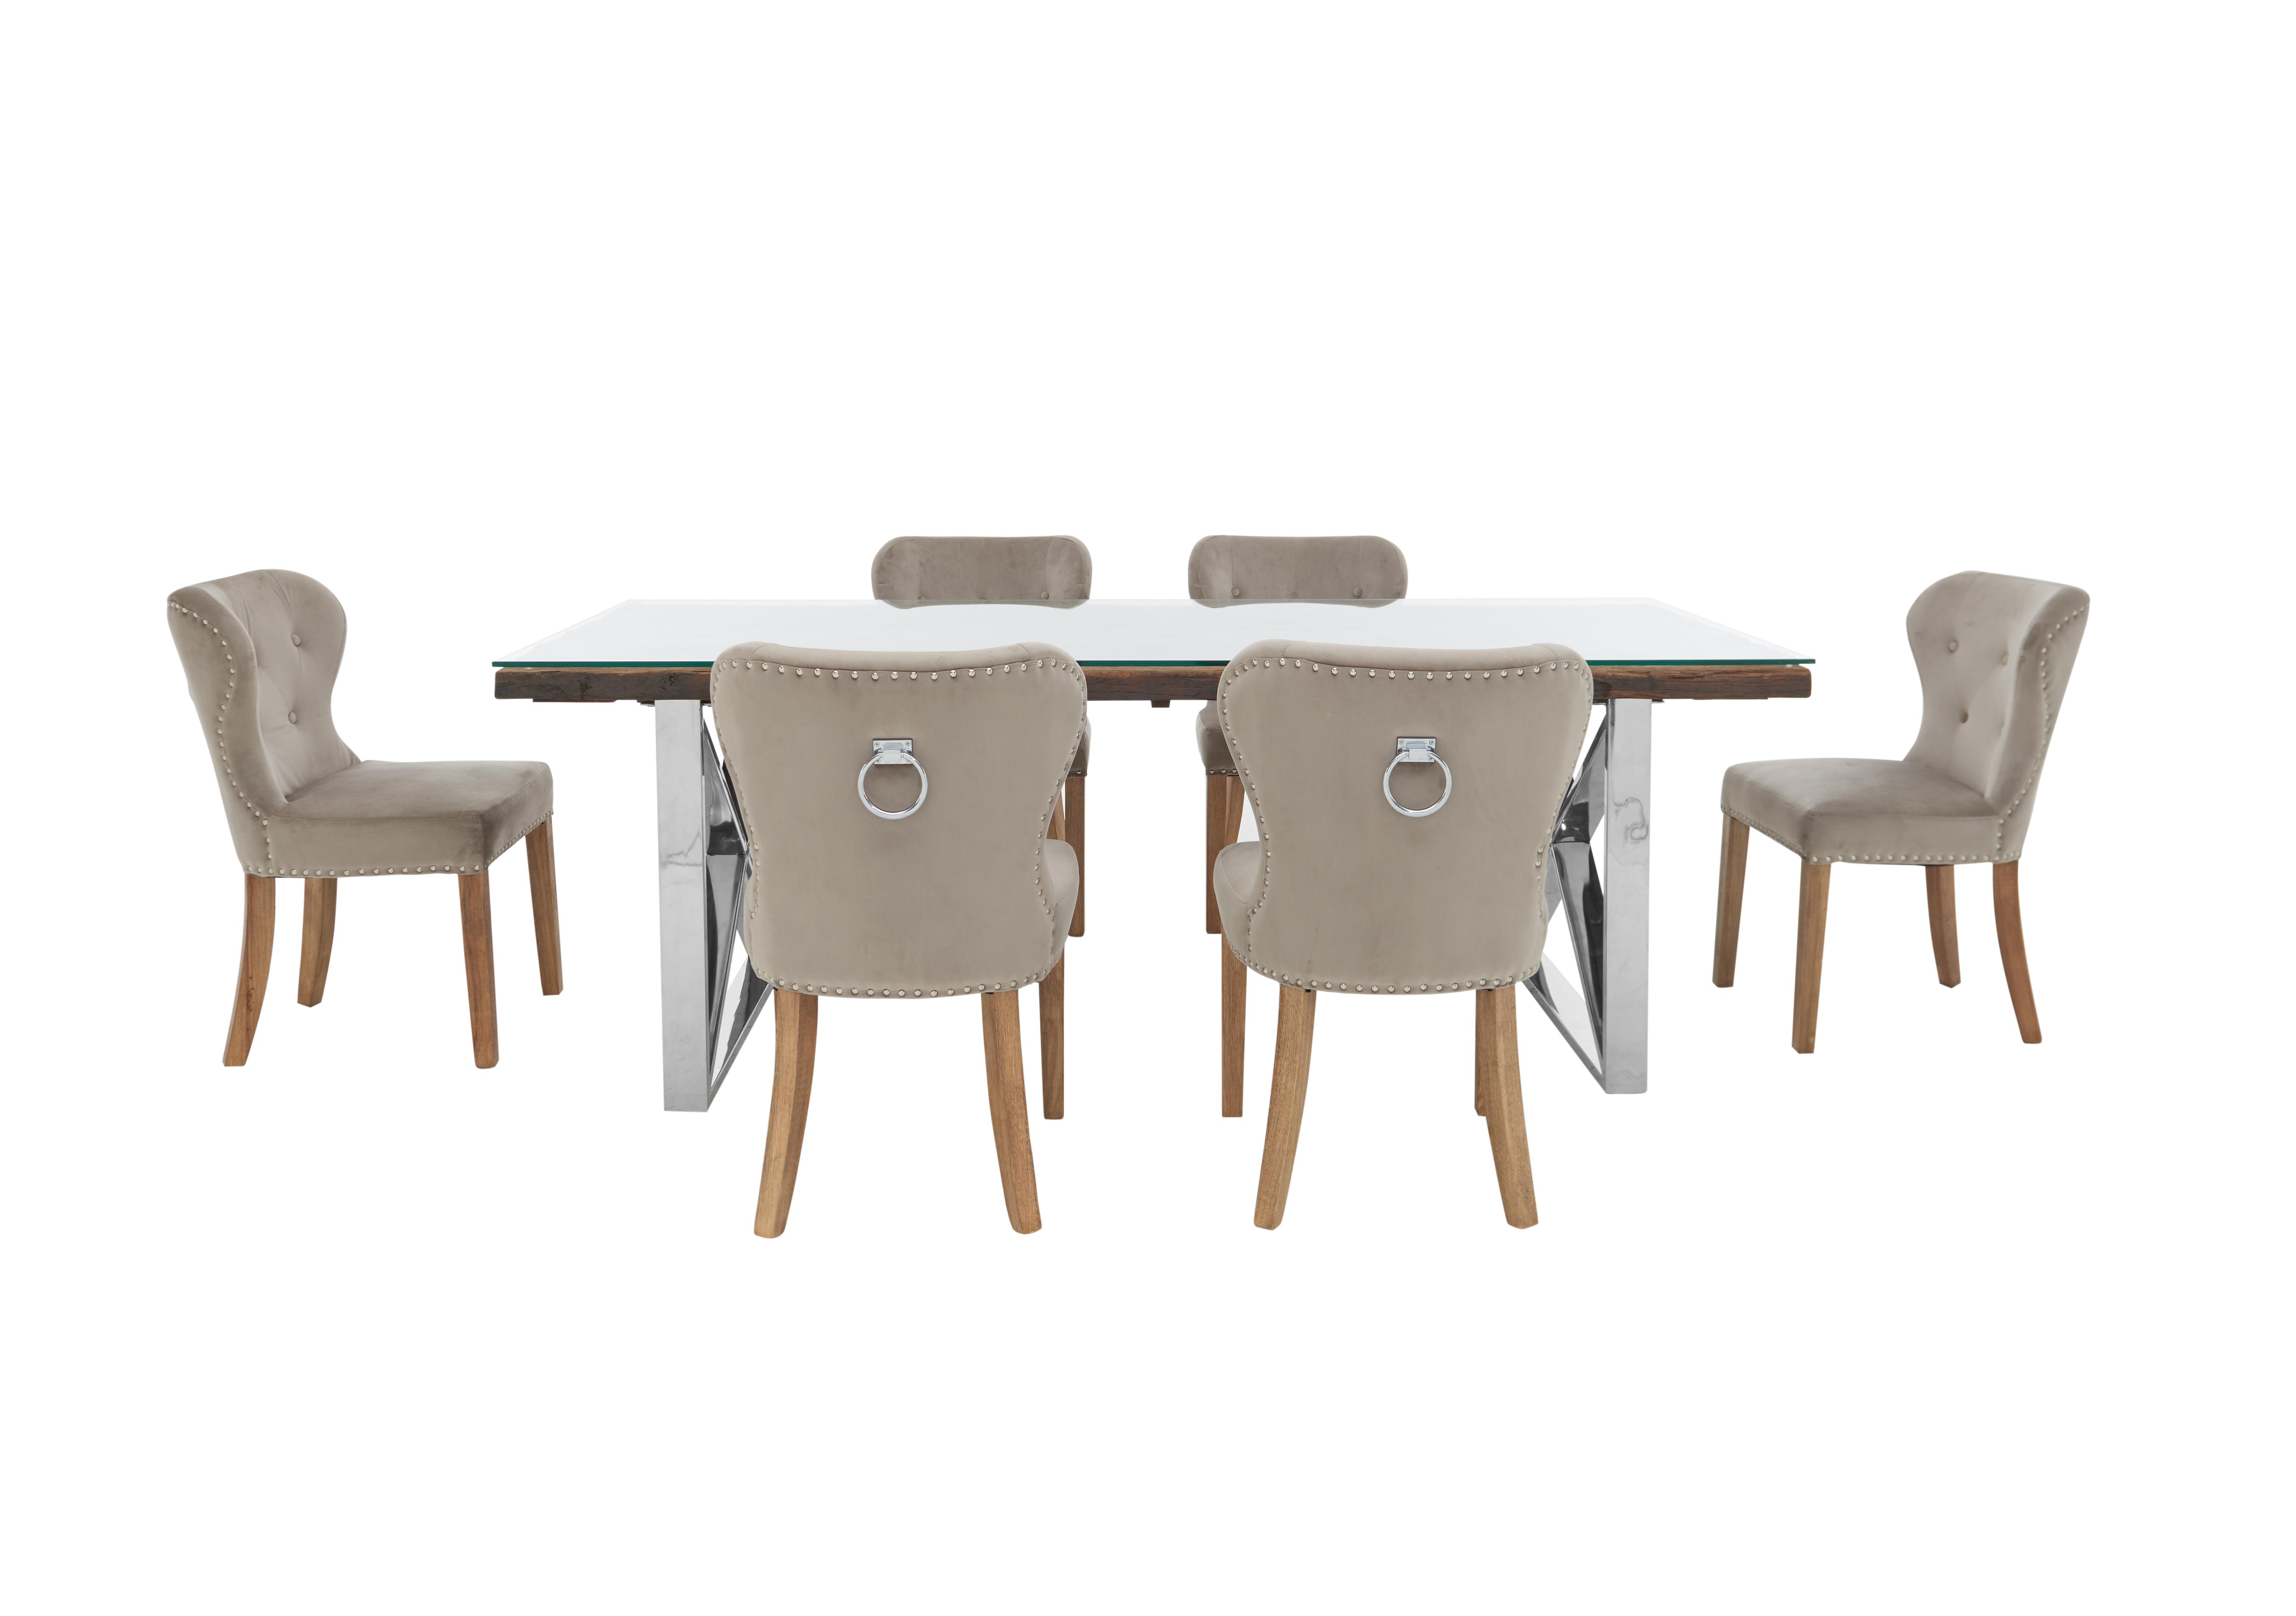 Picture of: Chennai Dining Table With X Shaped Legs And 6 Upholstered Dining Chairs Furniture Village